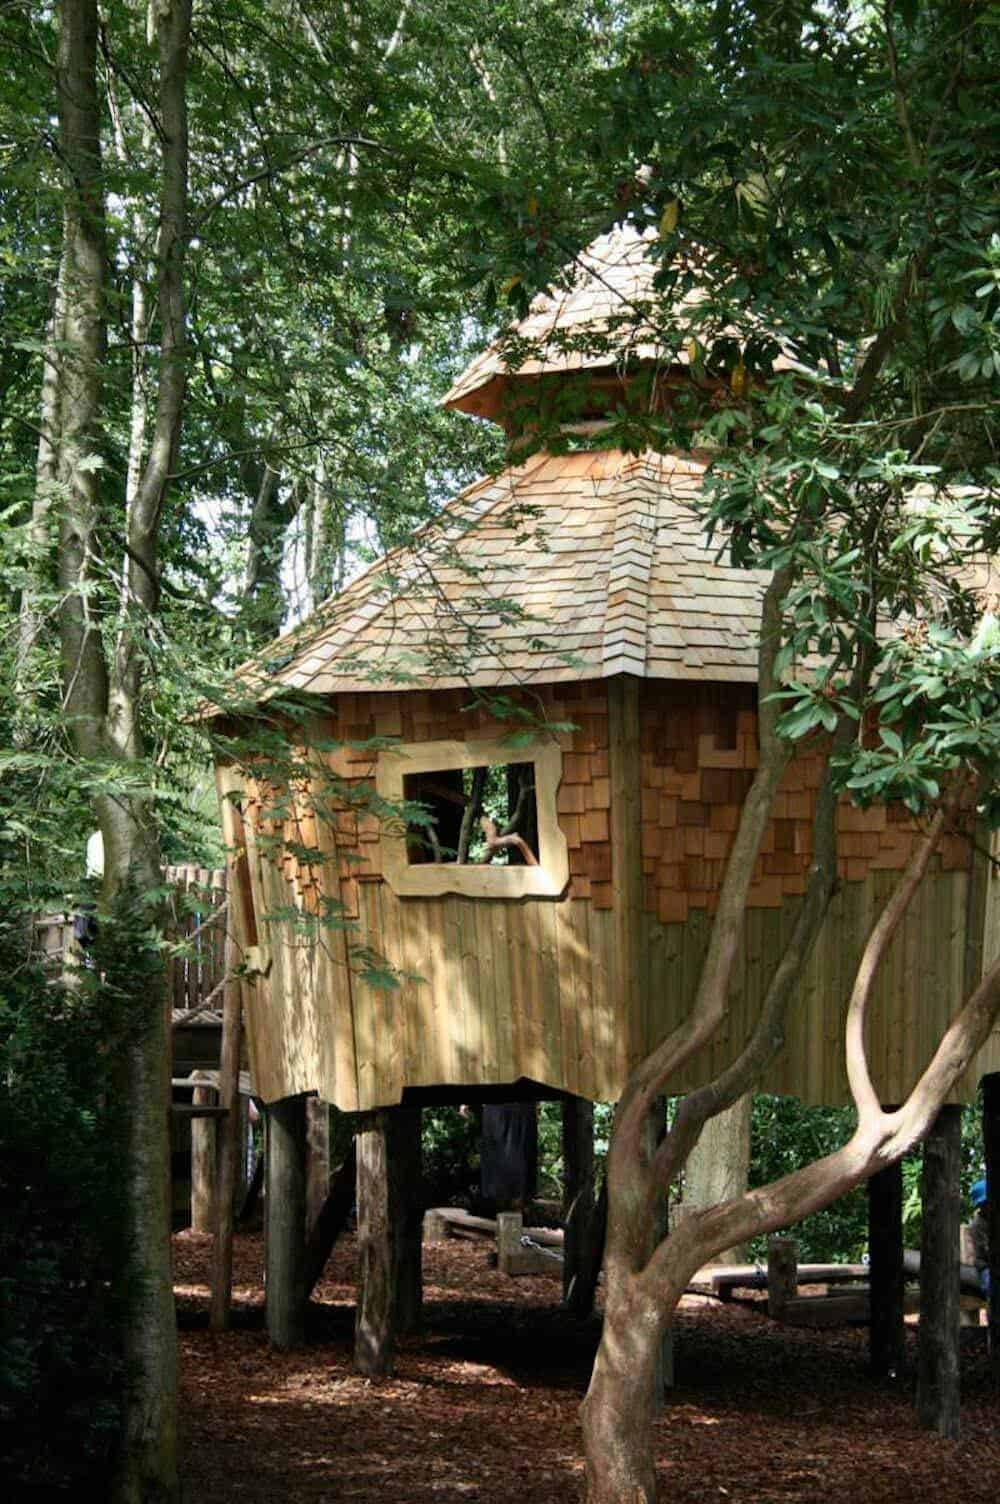 Adventure play treehouse at RHS Harlow Carr